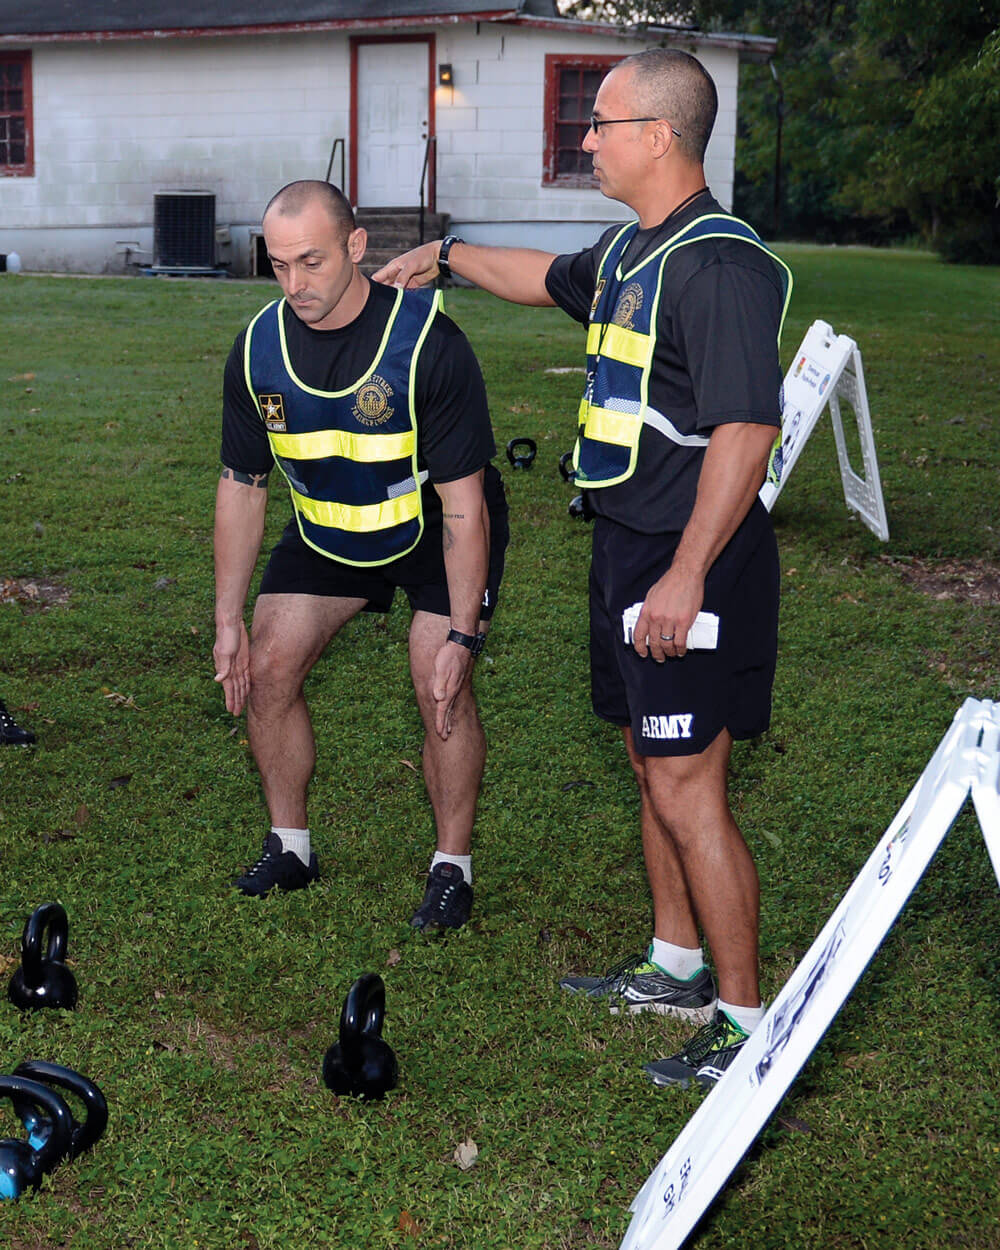 SSG Anthony Delagarza and SFC Athan Schindler, both Master Fitness Trainer Course instructors, Texas Army National Guard, demonstrate proper form during a round of circuit exercises at Camp Mabry as part of the Master Fitness Trainer Course.